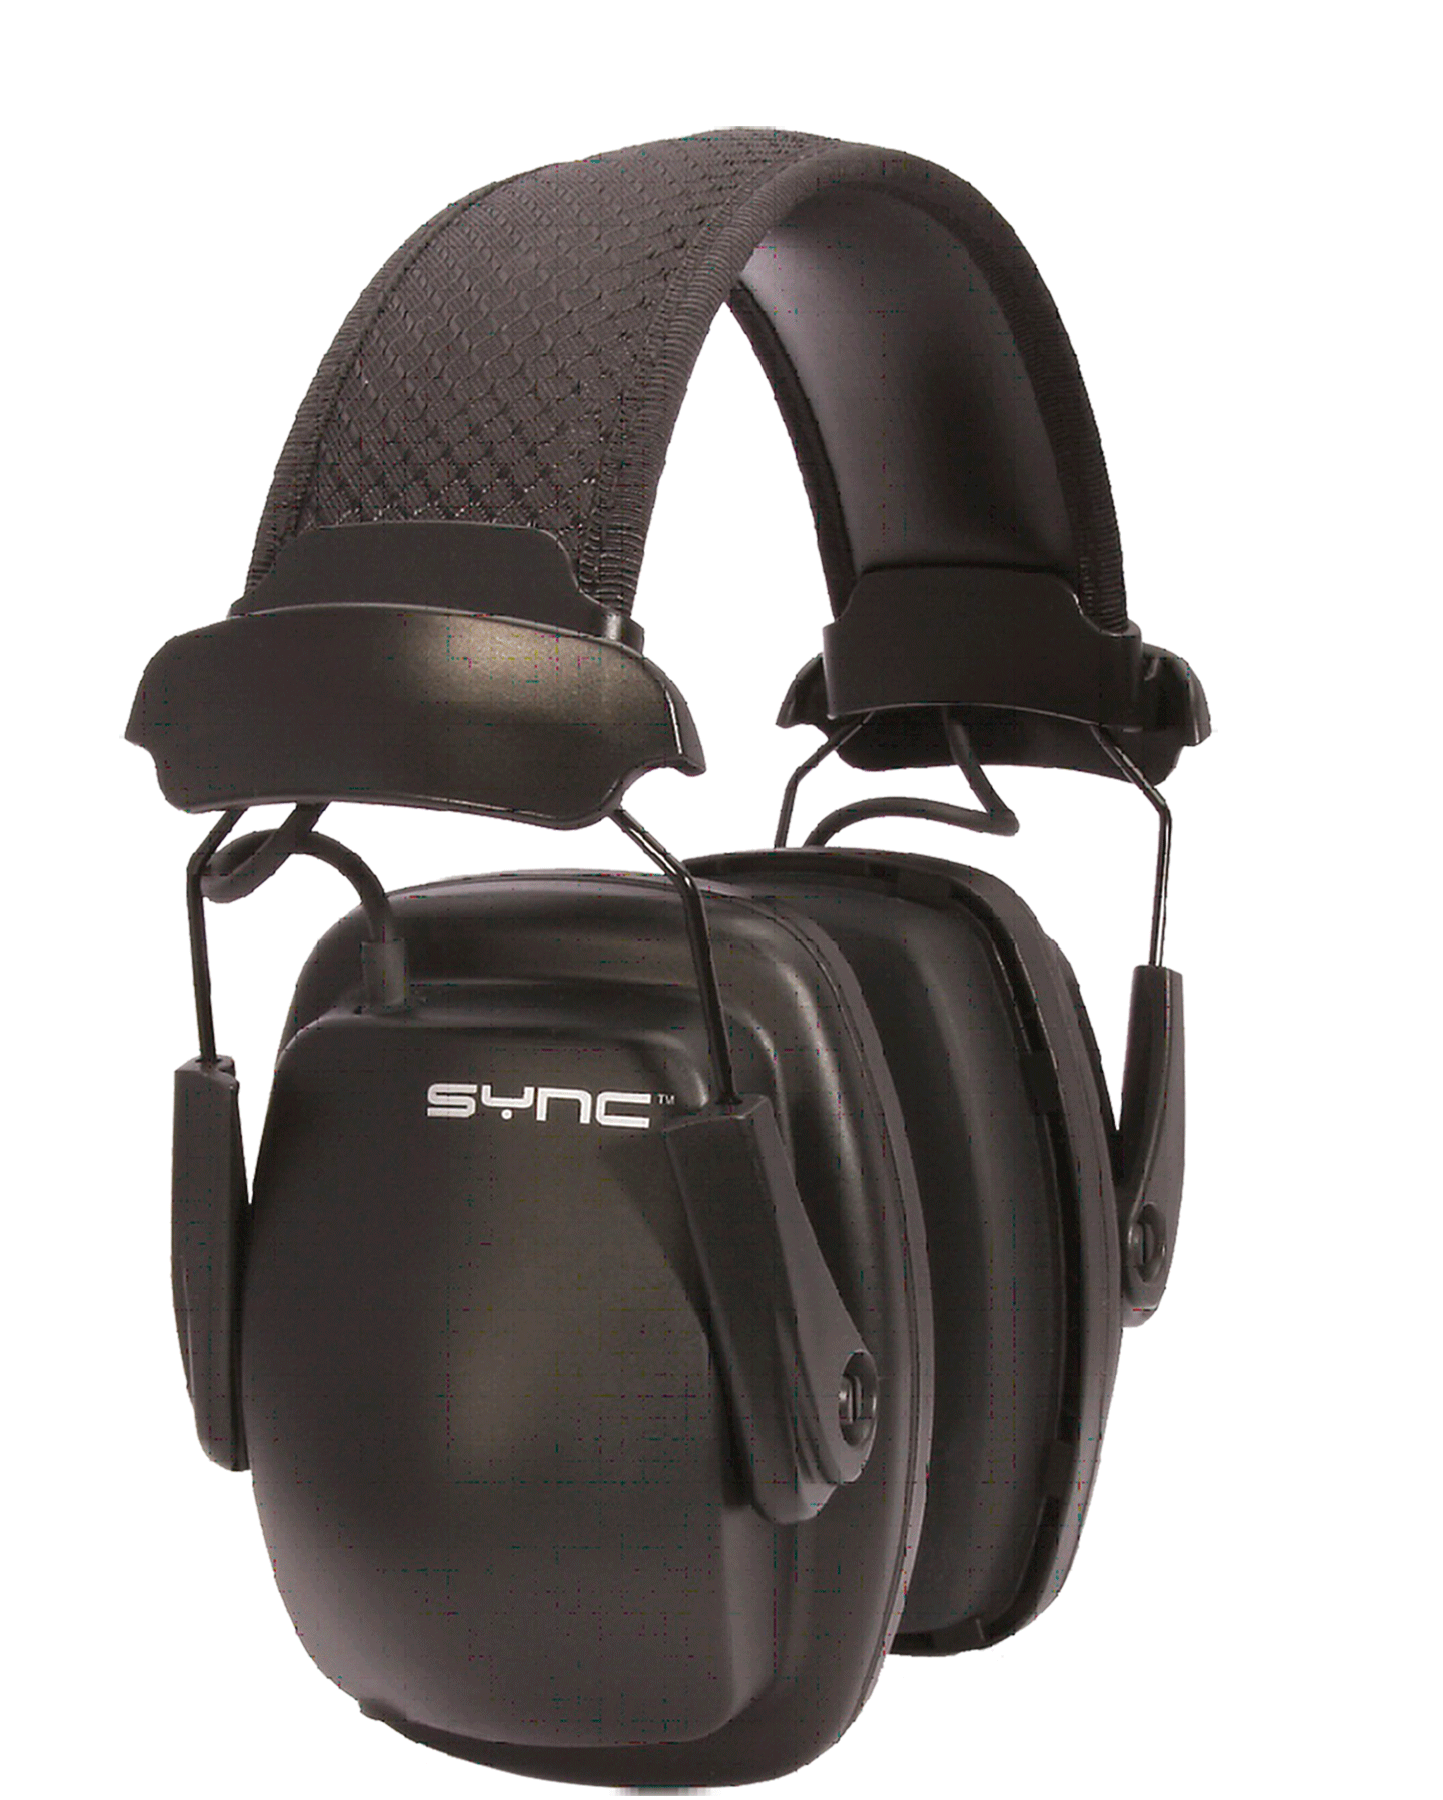 Howard Leight Sync Stereo Electronic Earmuffs NRR 25 dB - Black